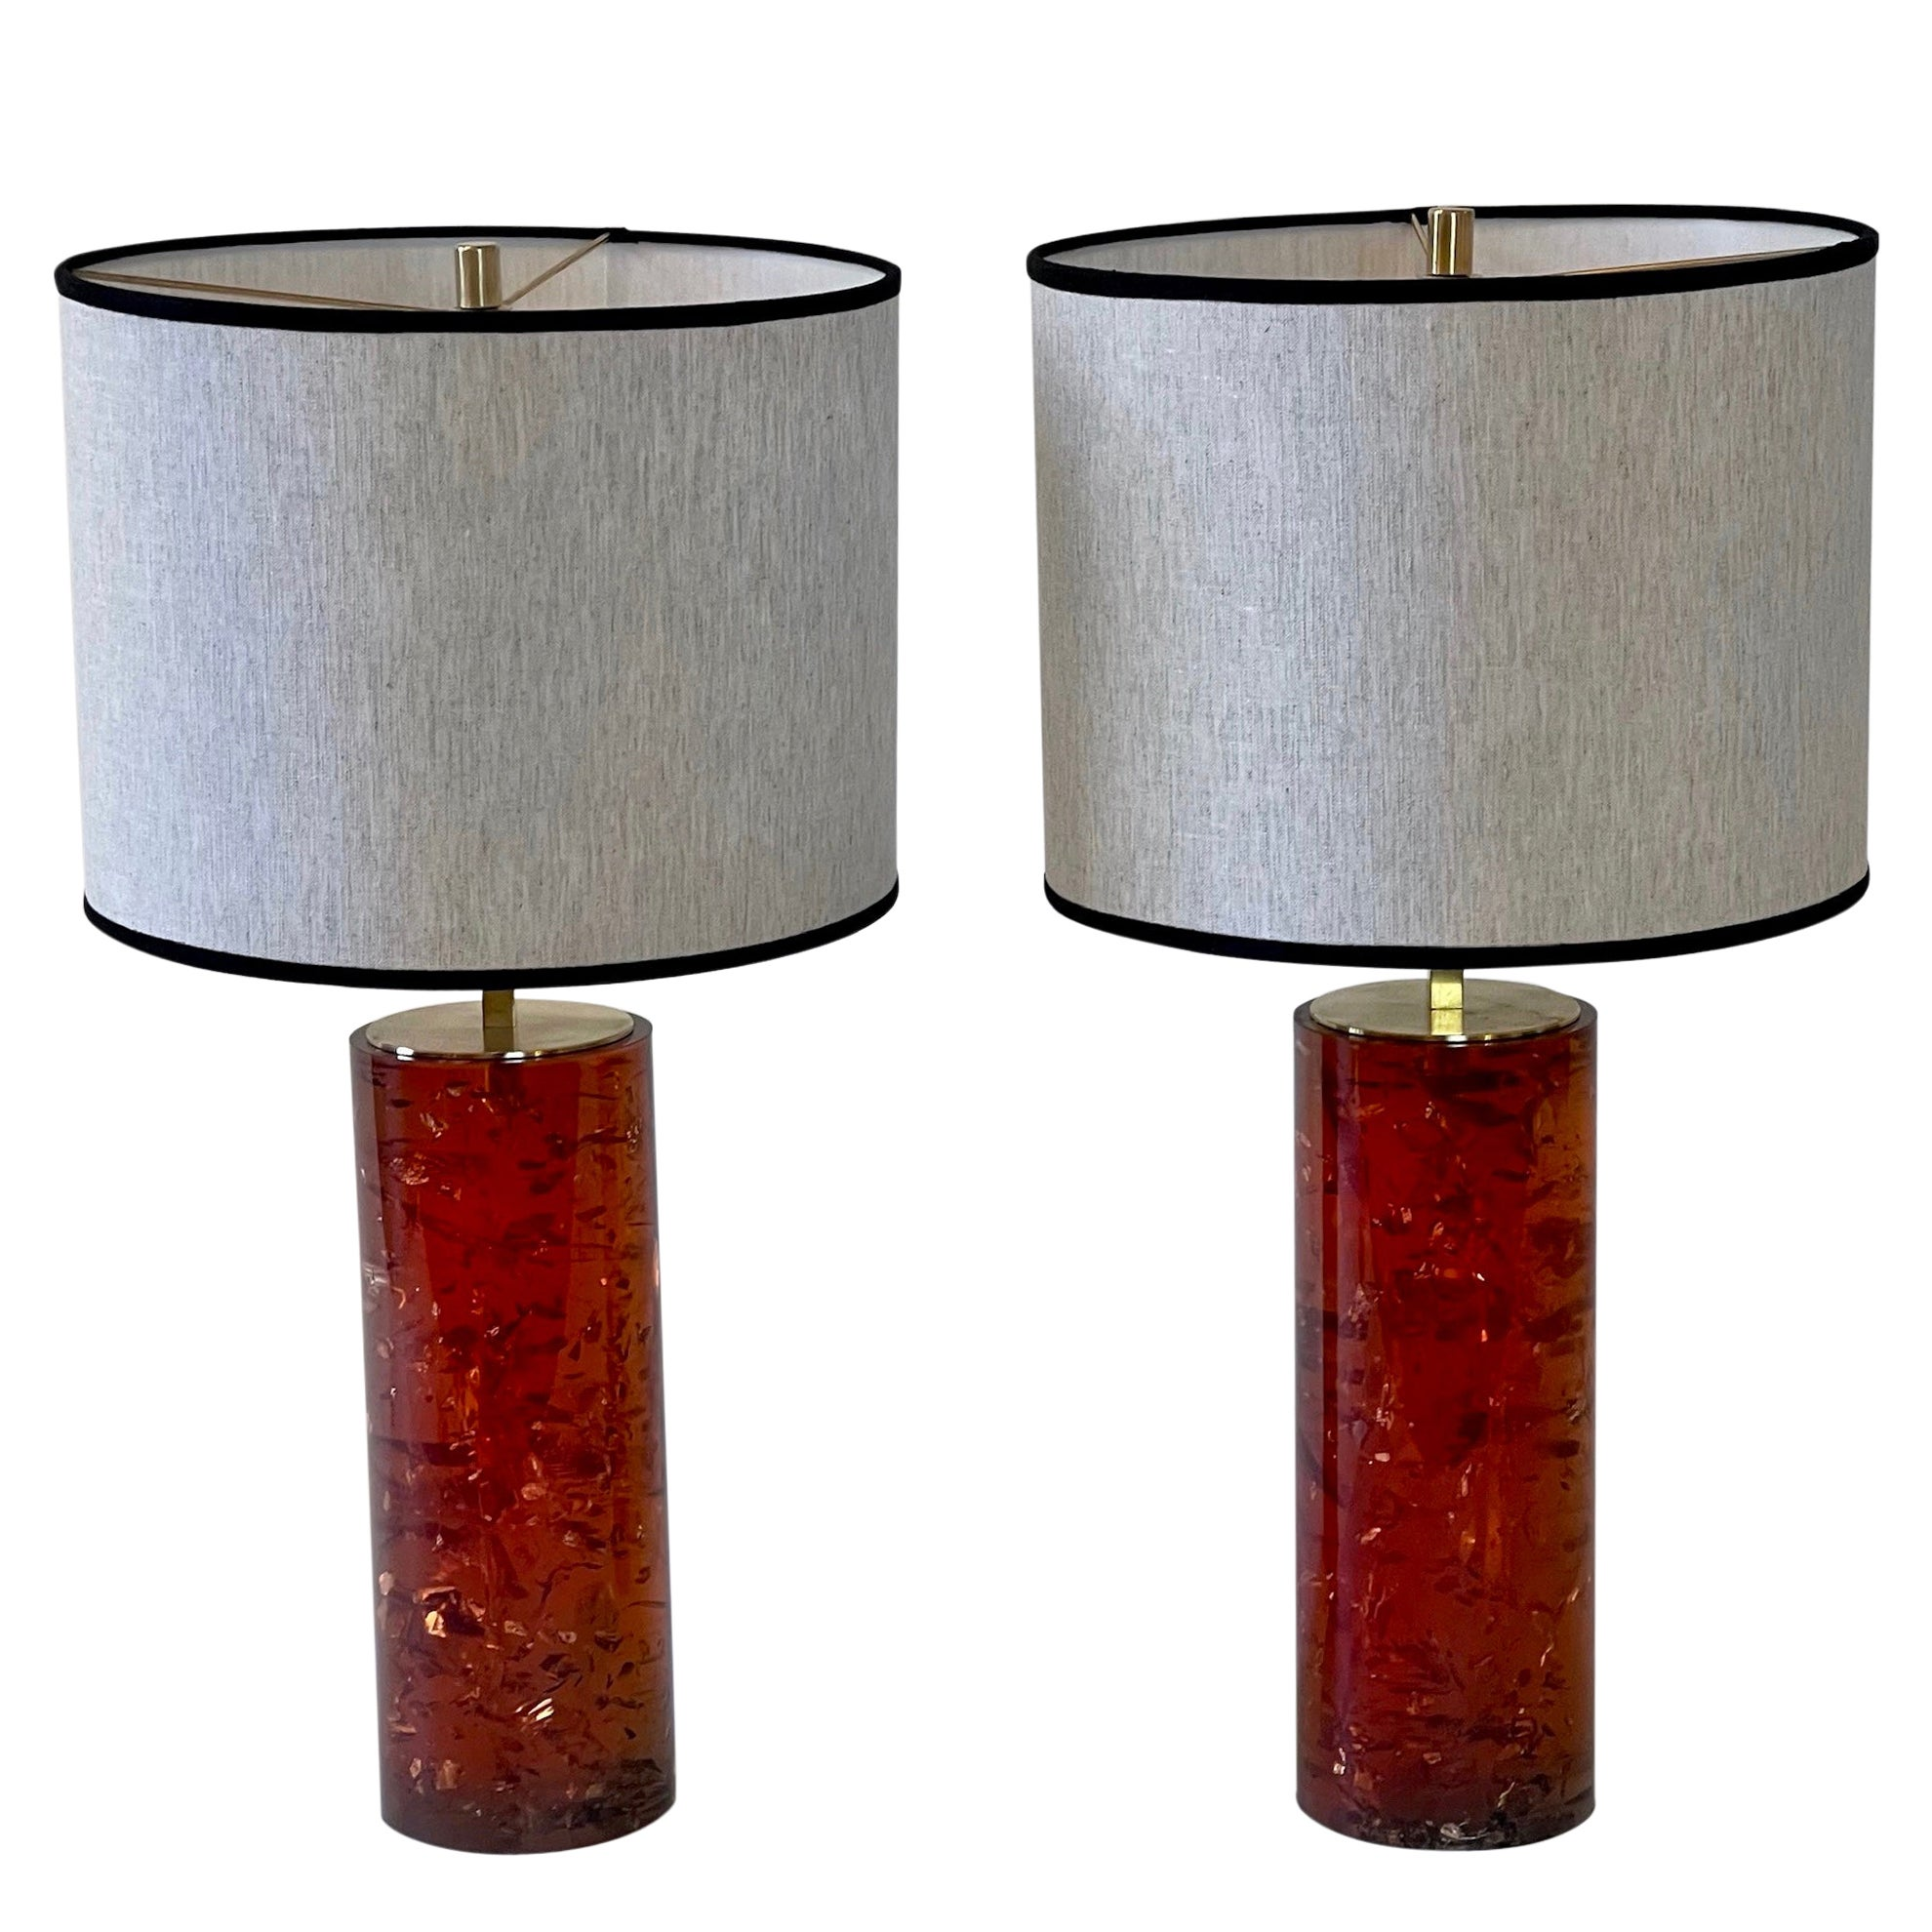 Pair of Italian Reddish Amber Fractal Resin Table Lamps w/Brass Details & Shades